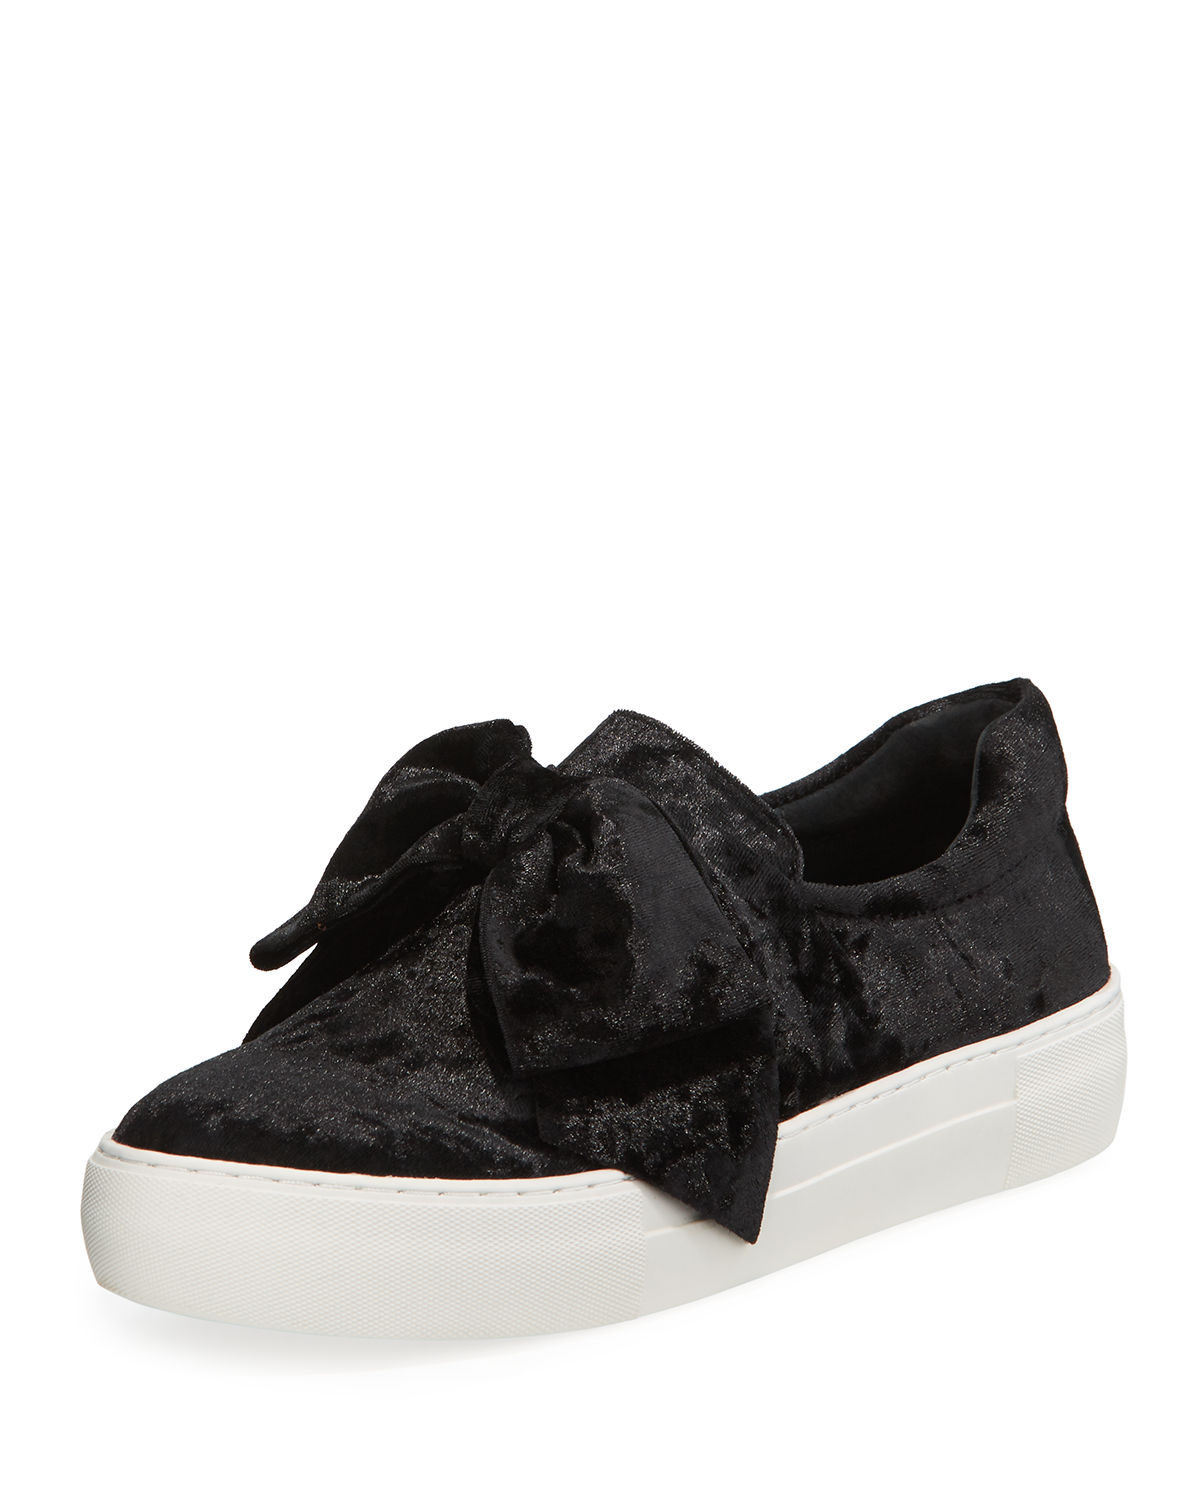 Beauty Suede Bow Sneaker